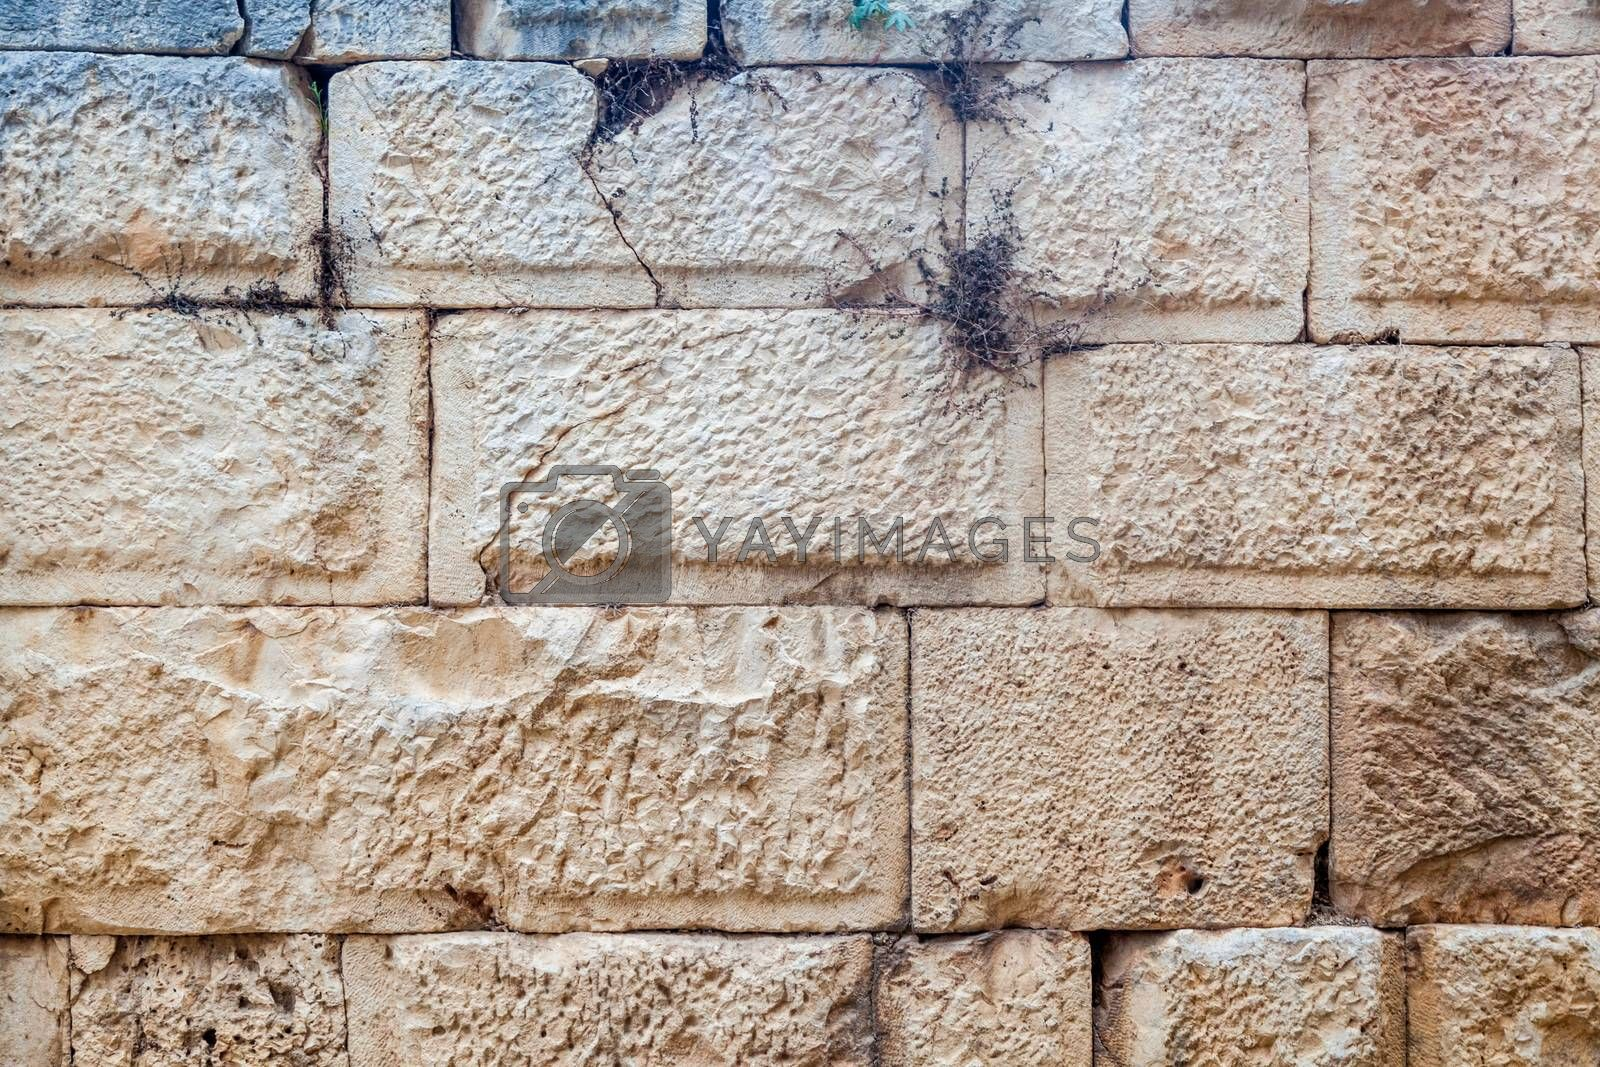 Detailed front view of ancient brick wall